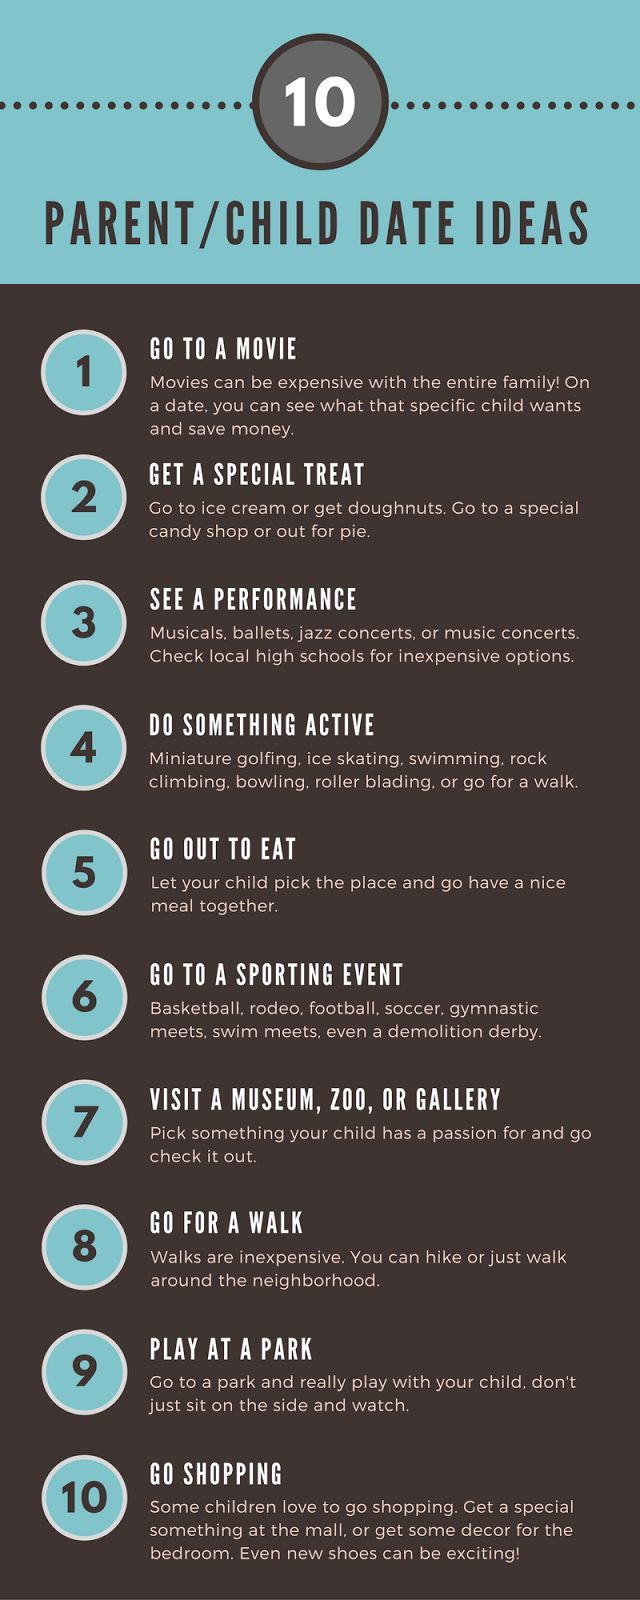 10 Parent/Child Date Ideas #parenting